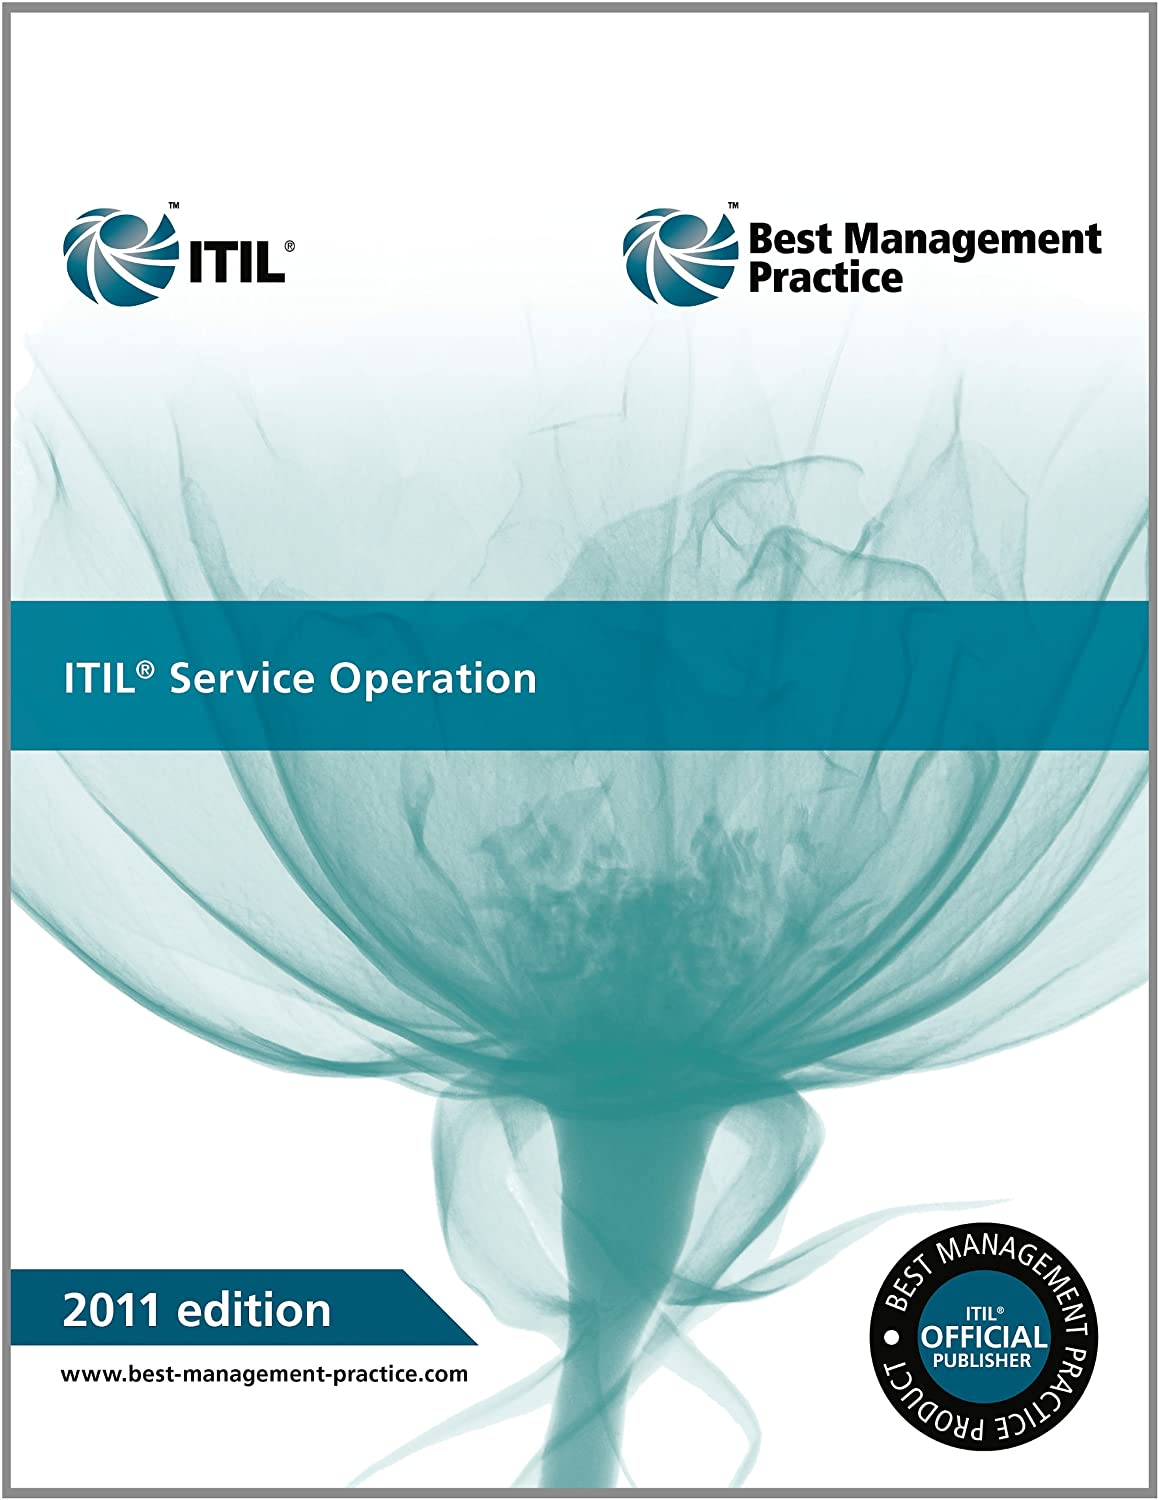 Offer itil service operation 2011 edition ebook project book description 1betcityfo Images